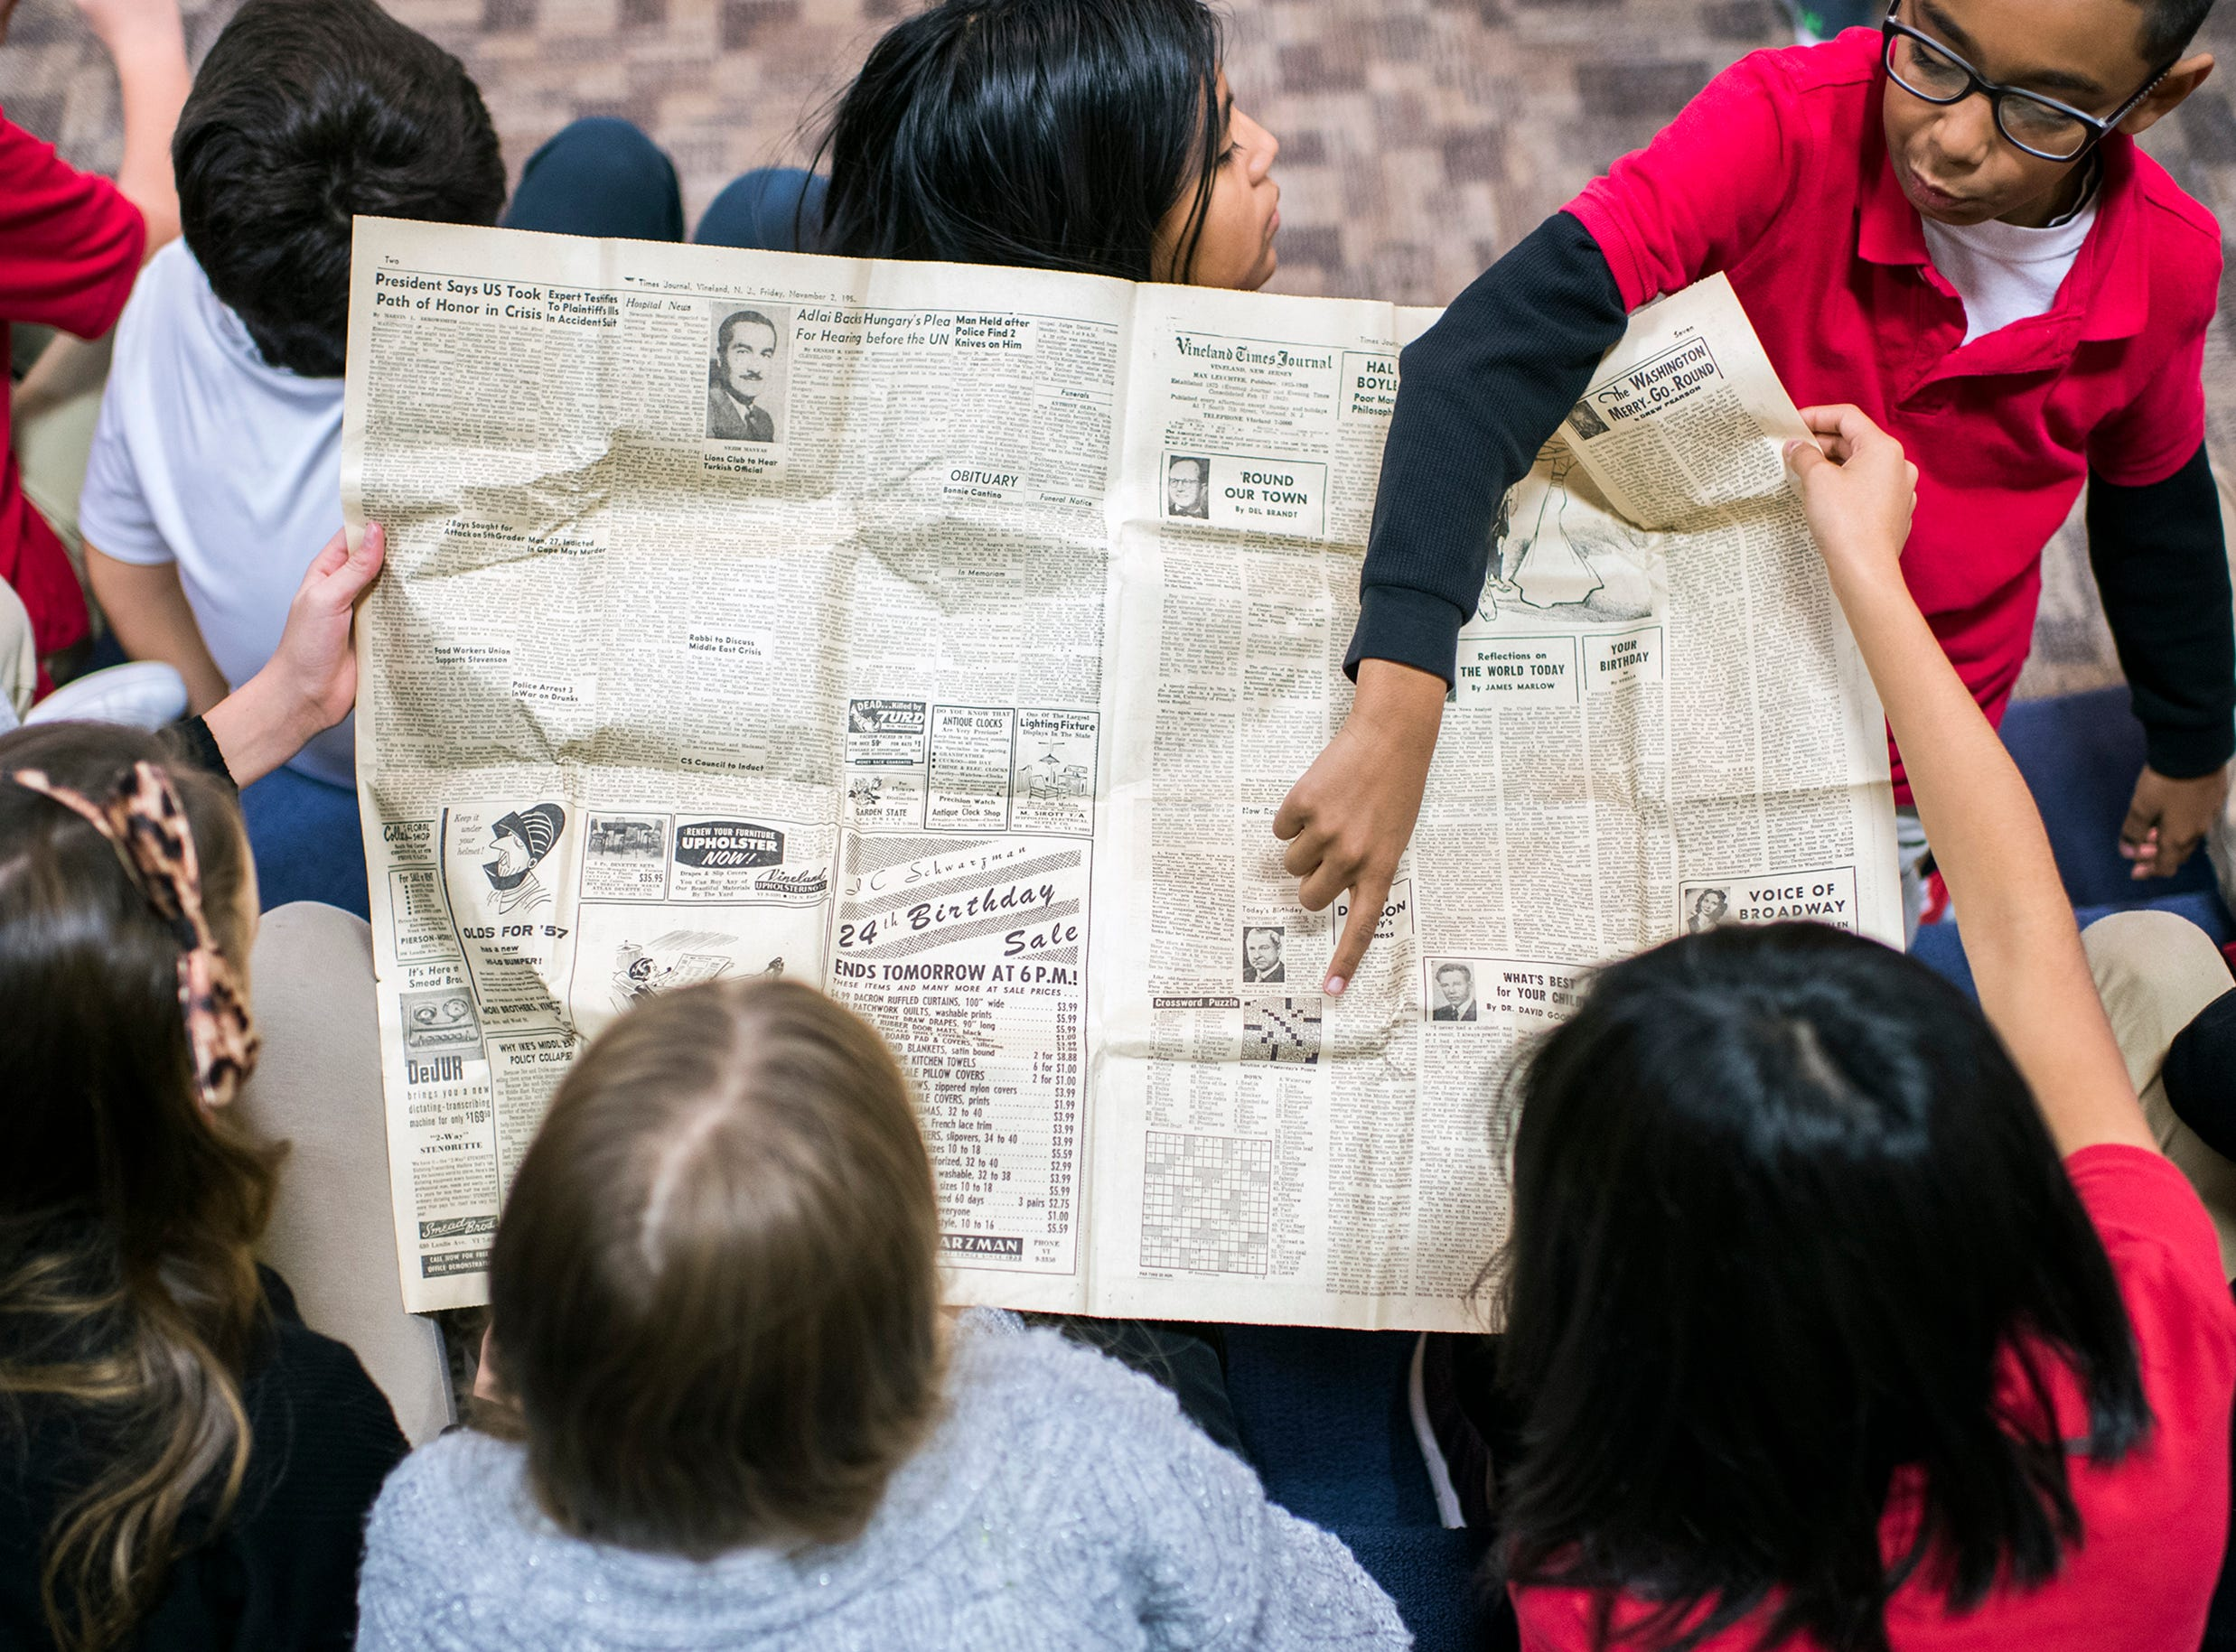 Students look over an old newspaper after a time capsule from 1956 was opened at Marie Durand Elementary School Monday, Dec. 3, 2018 in Vineland, N.J.